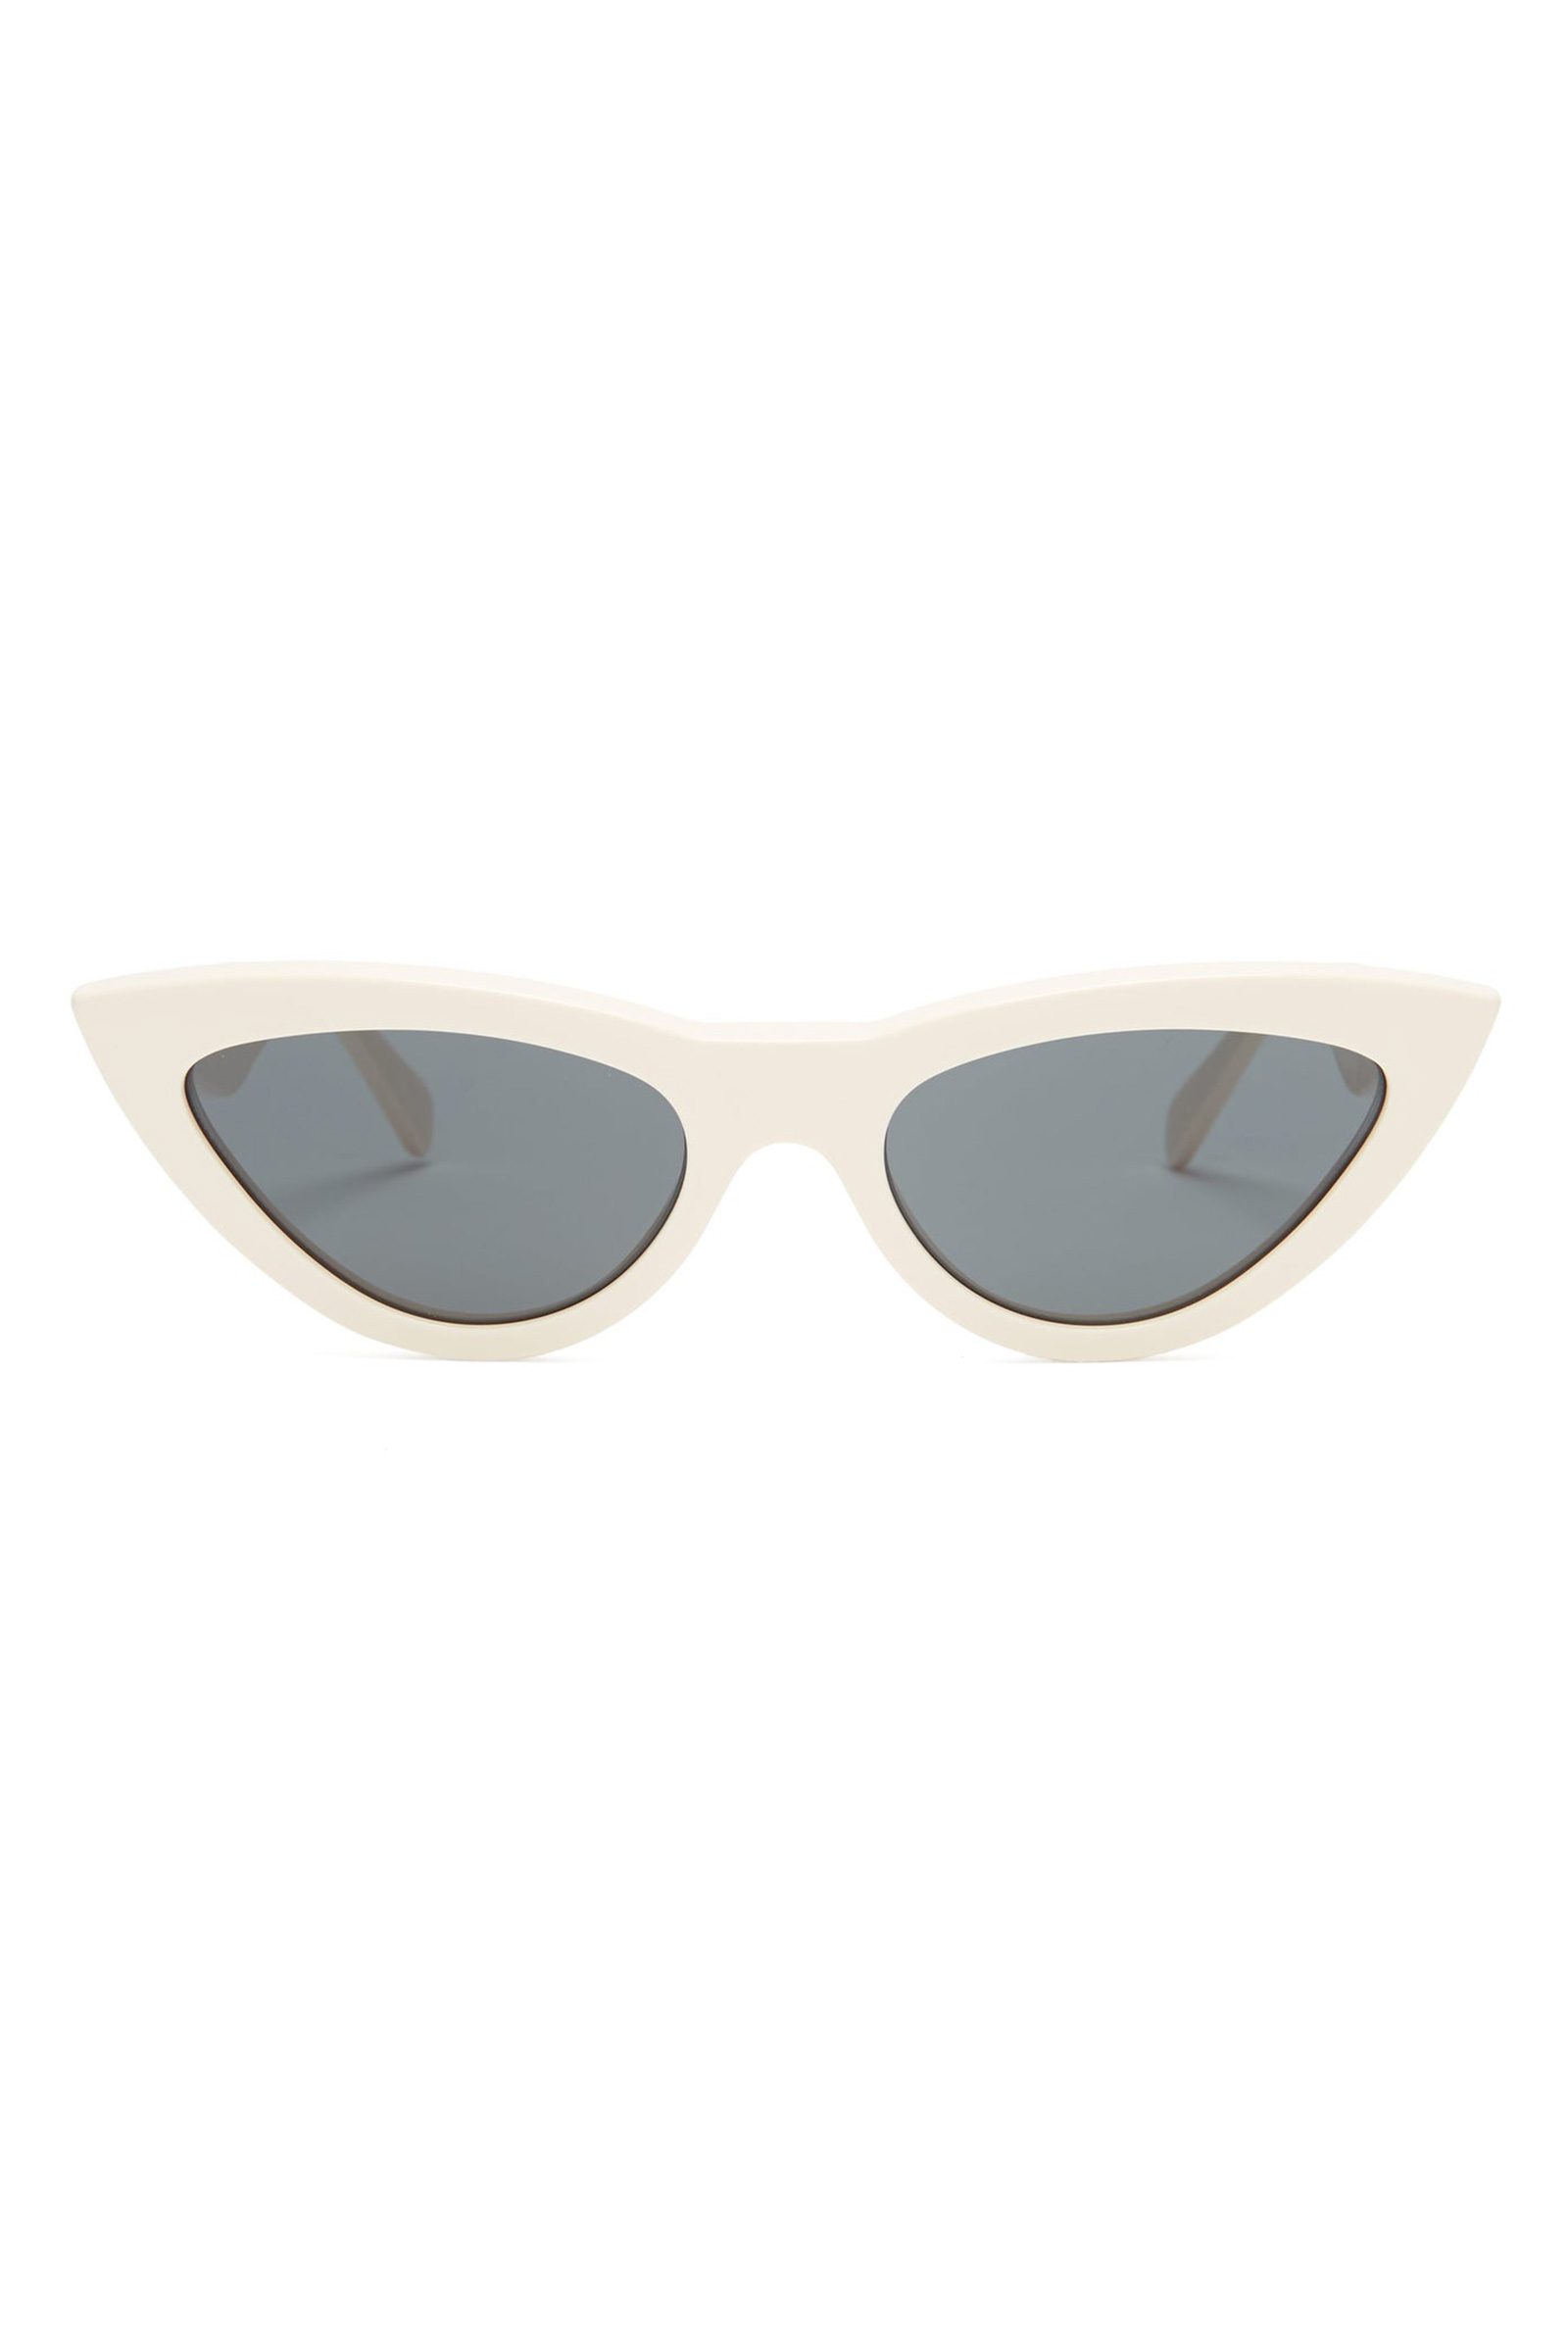 Click to Buy Celine-Sunglasses